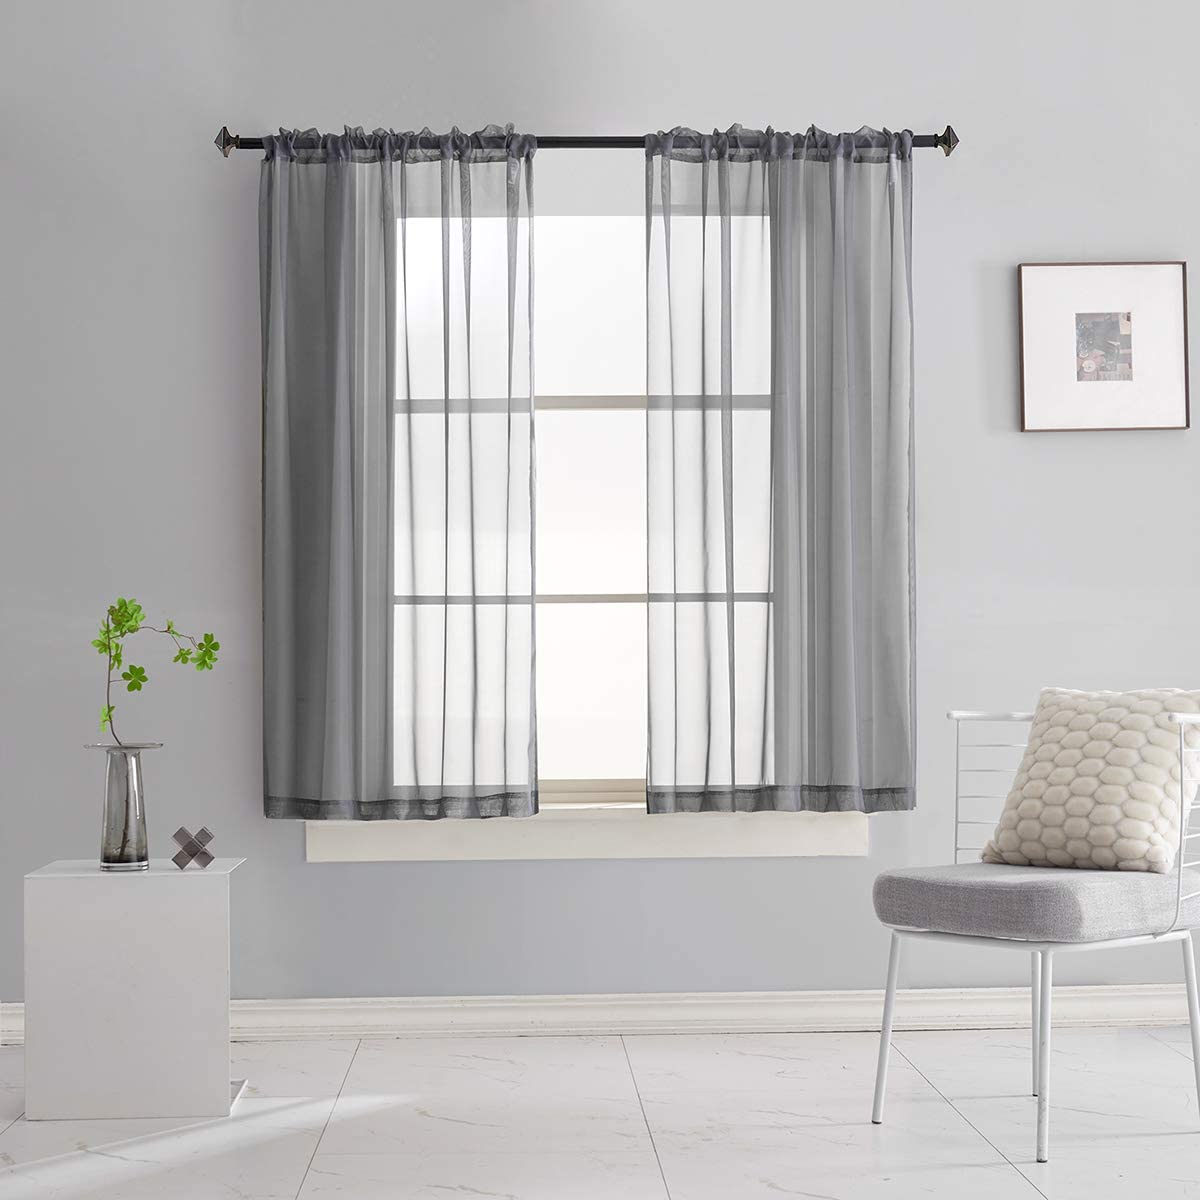 Home & Kitchen Beige Sheer Voile Curtains 84 Inches Long 2 Panels ...